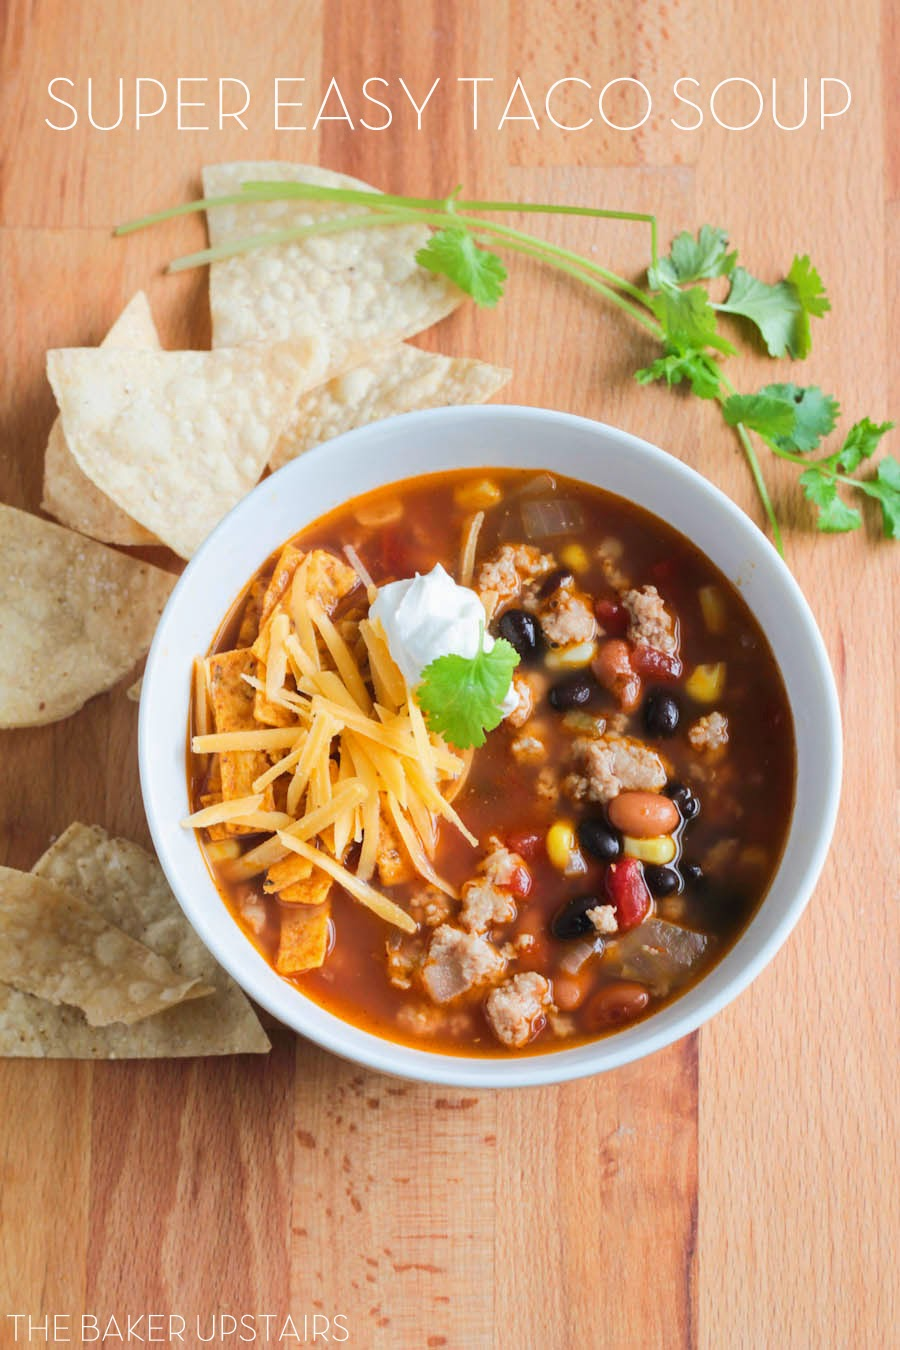 This simple and hearty taco soup is so easy to make, and full of delicious flavors!